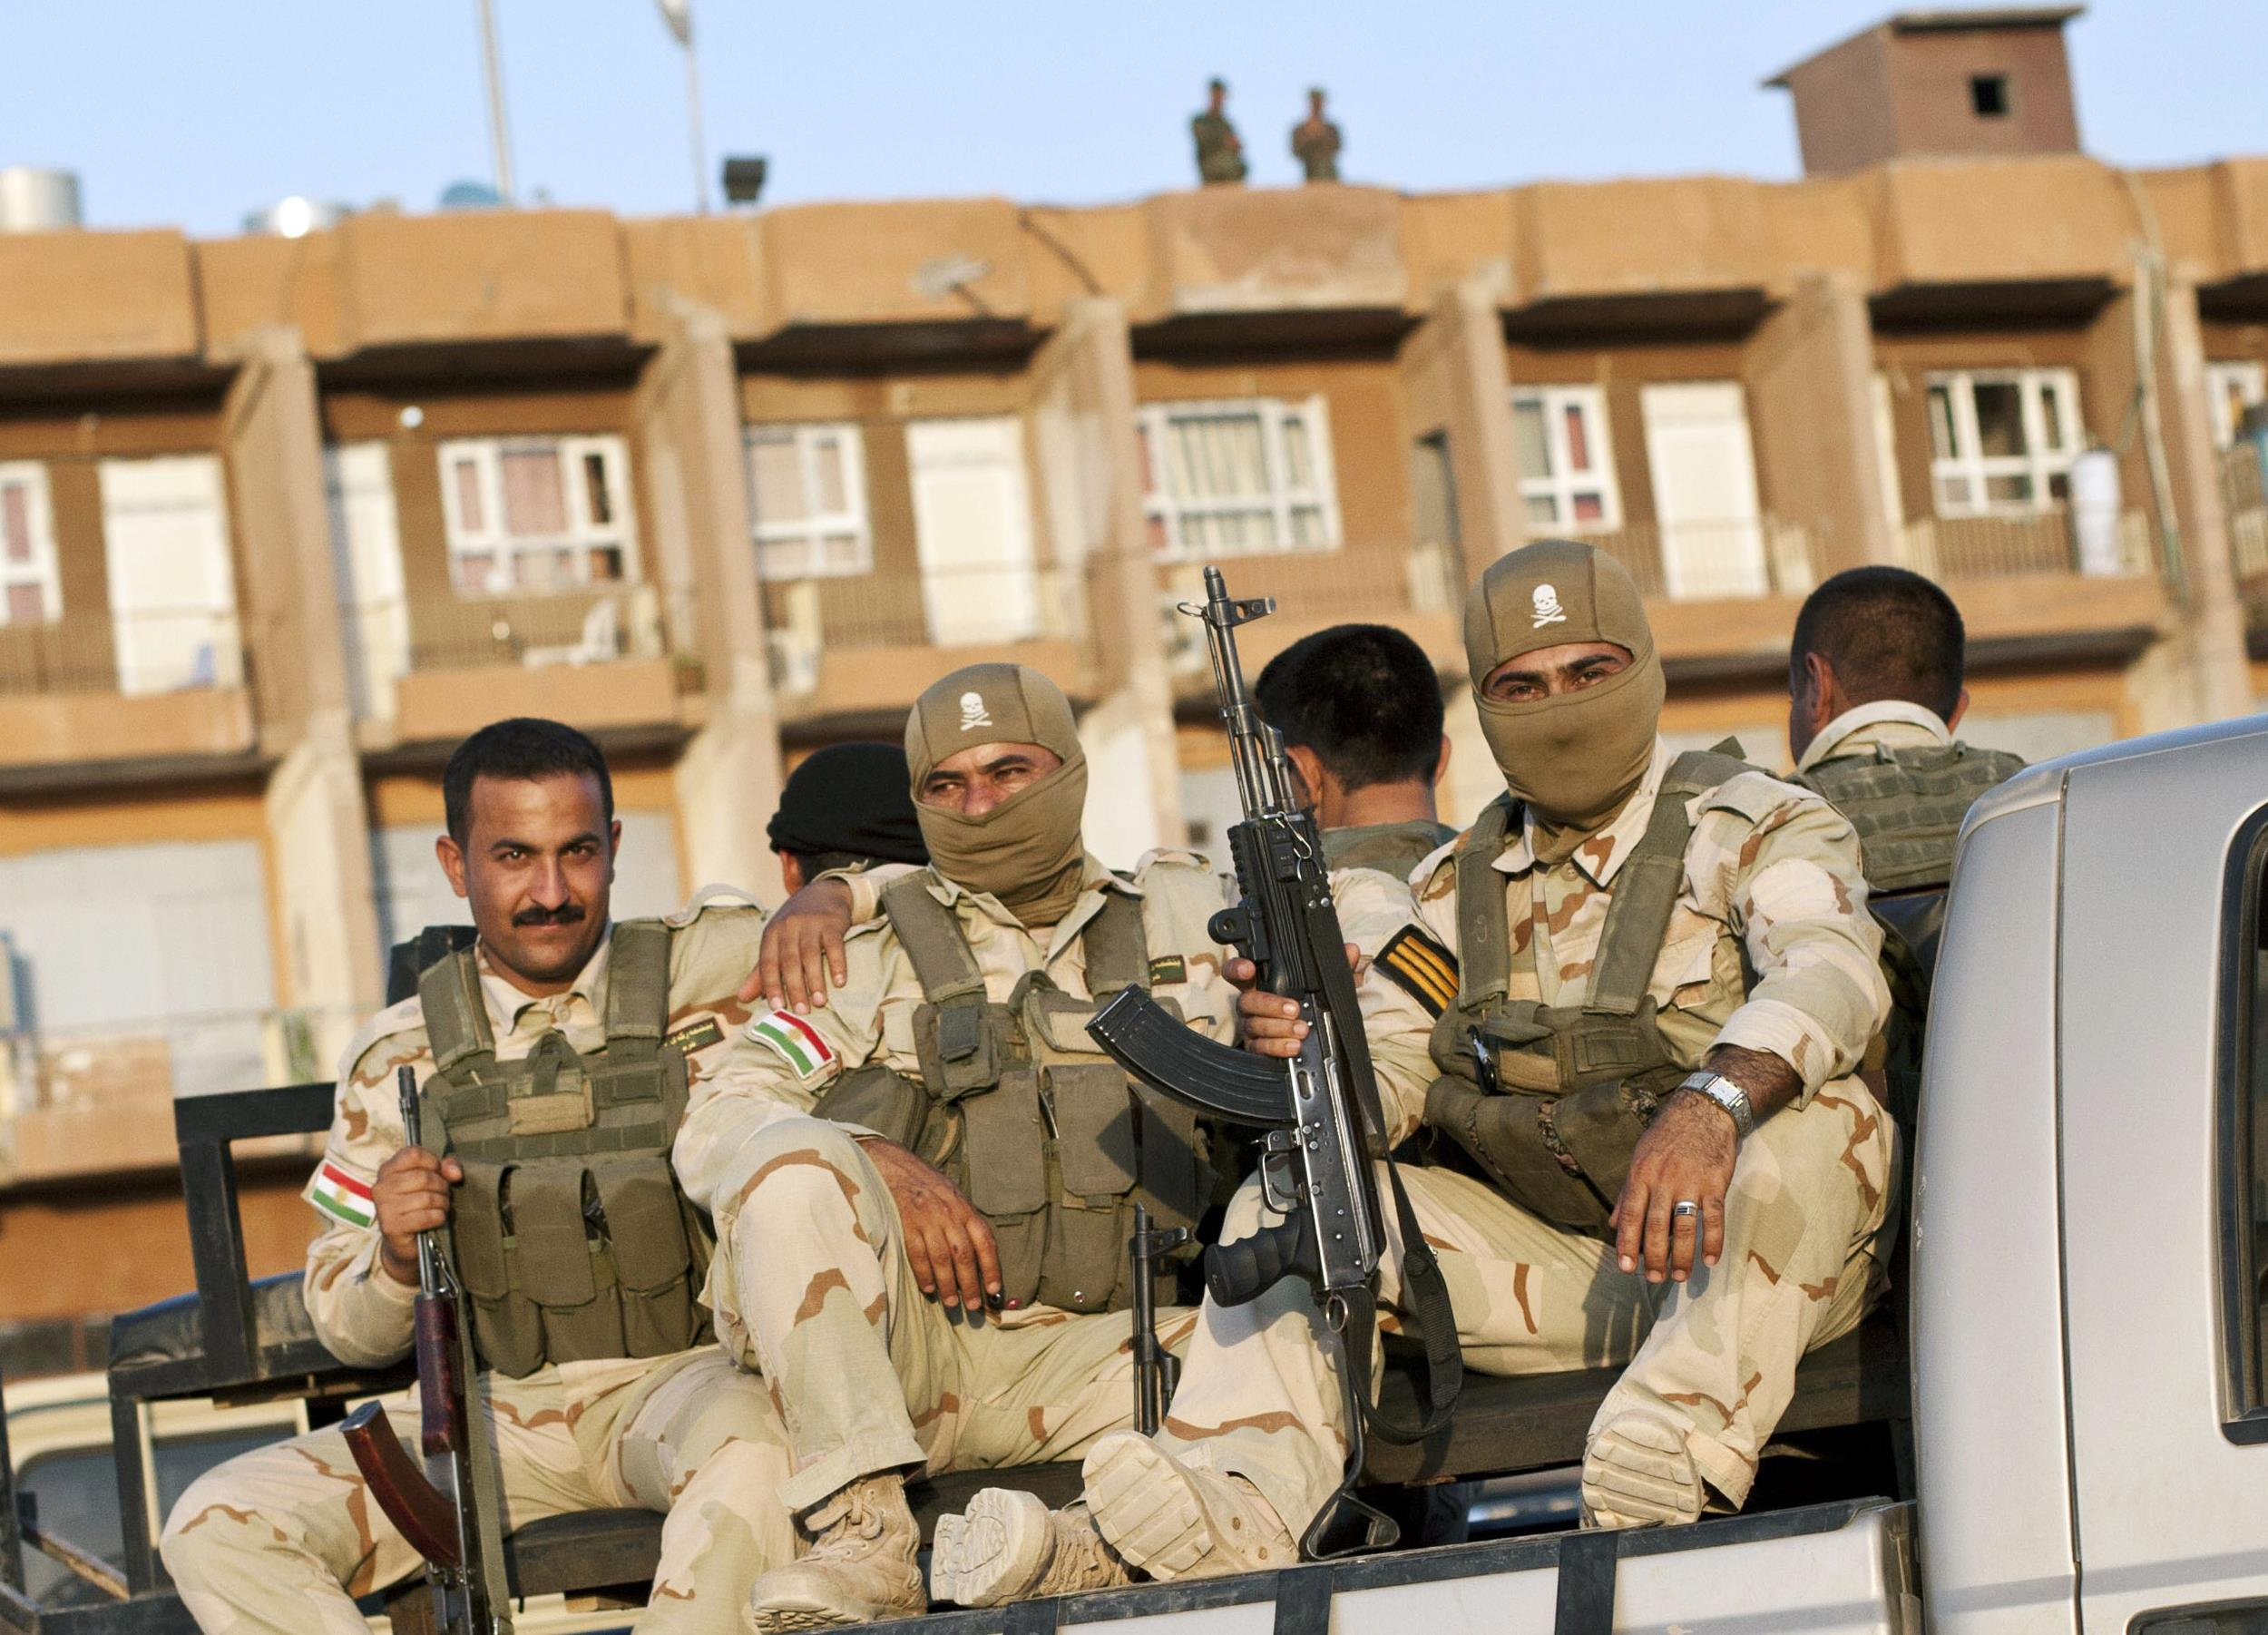 Image: Iraqi Kurdish forces sit at the back of a truck at an operating base in Iraq's Diyala province